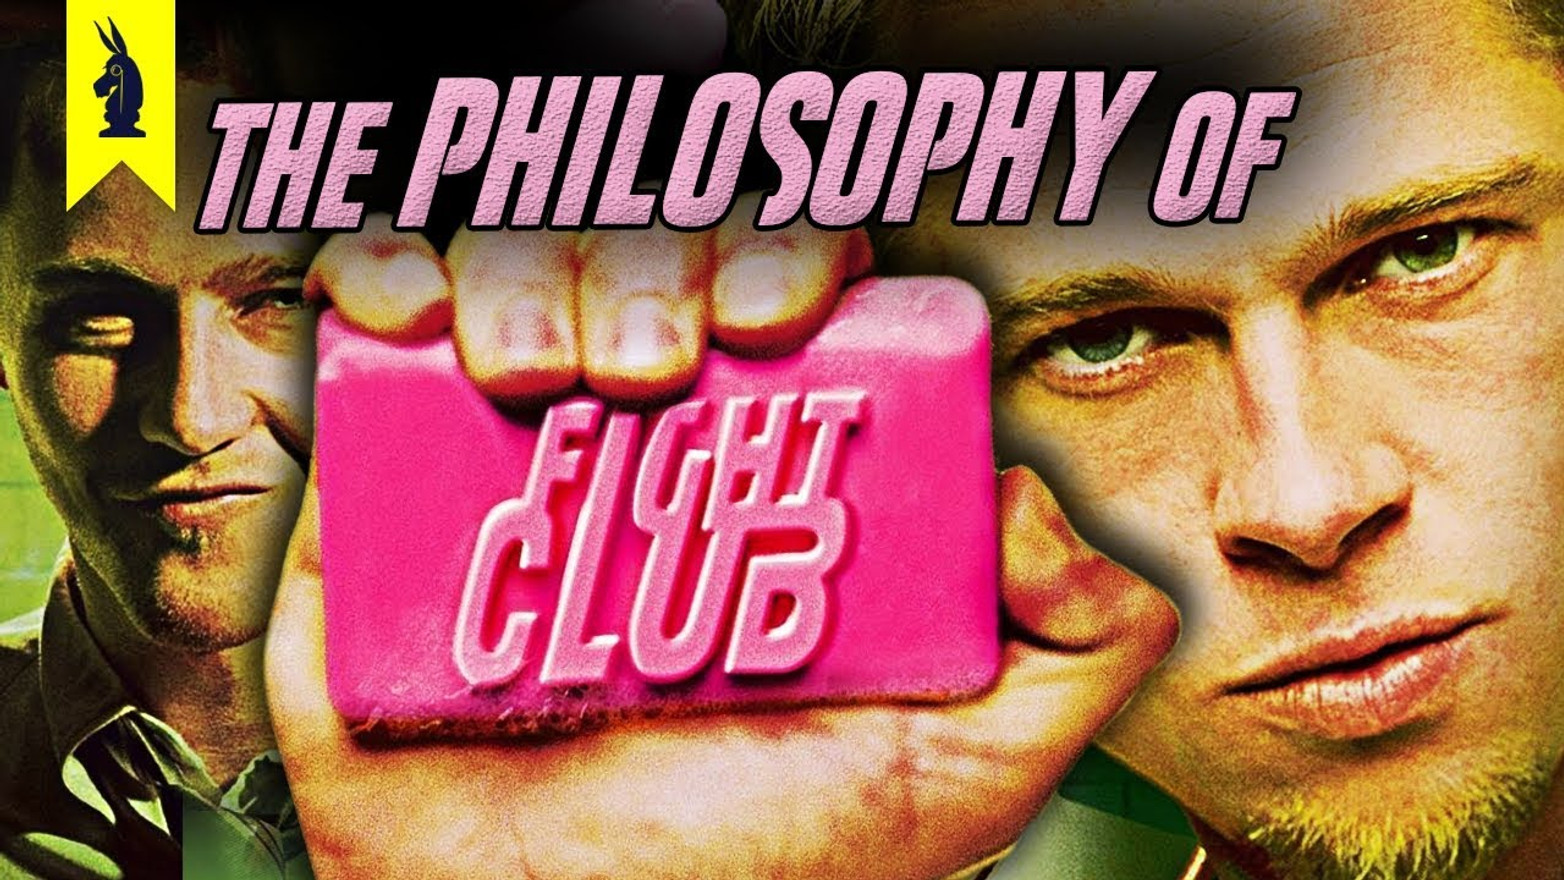 The Philosophy of Fight Club